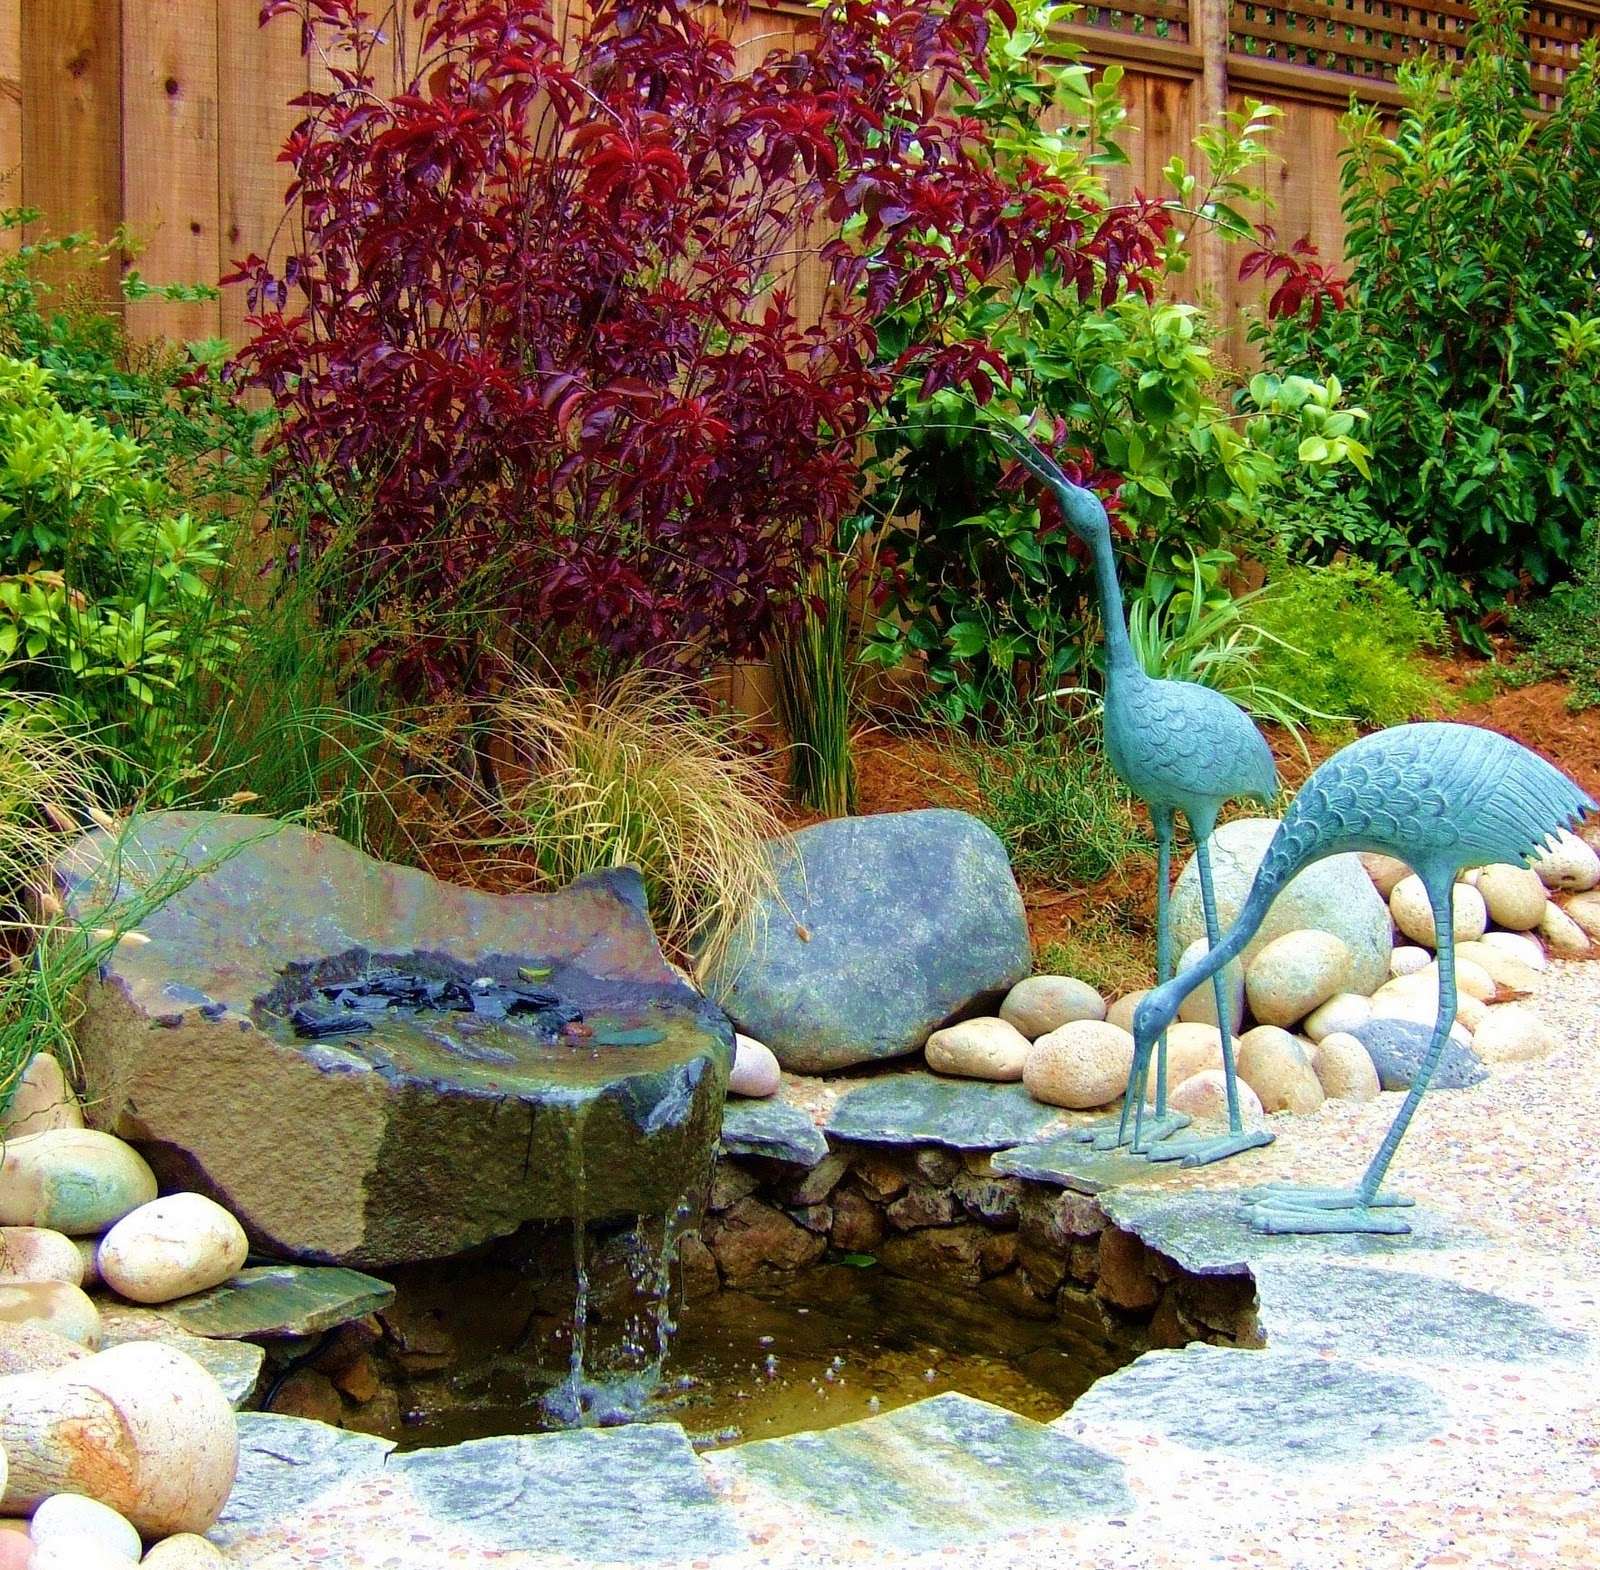 LIQUIDAMBAR Garden Design WATER in the garden